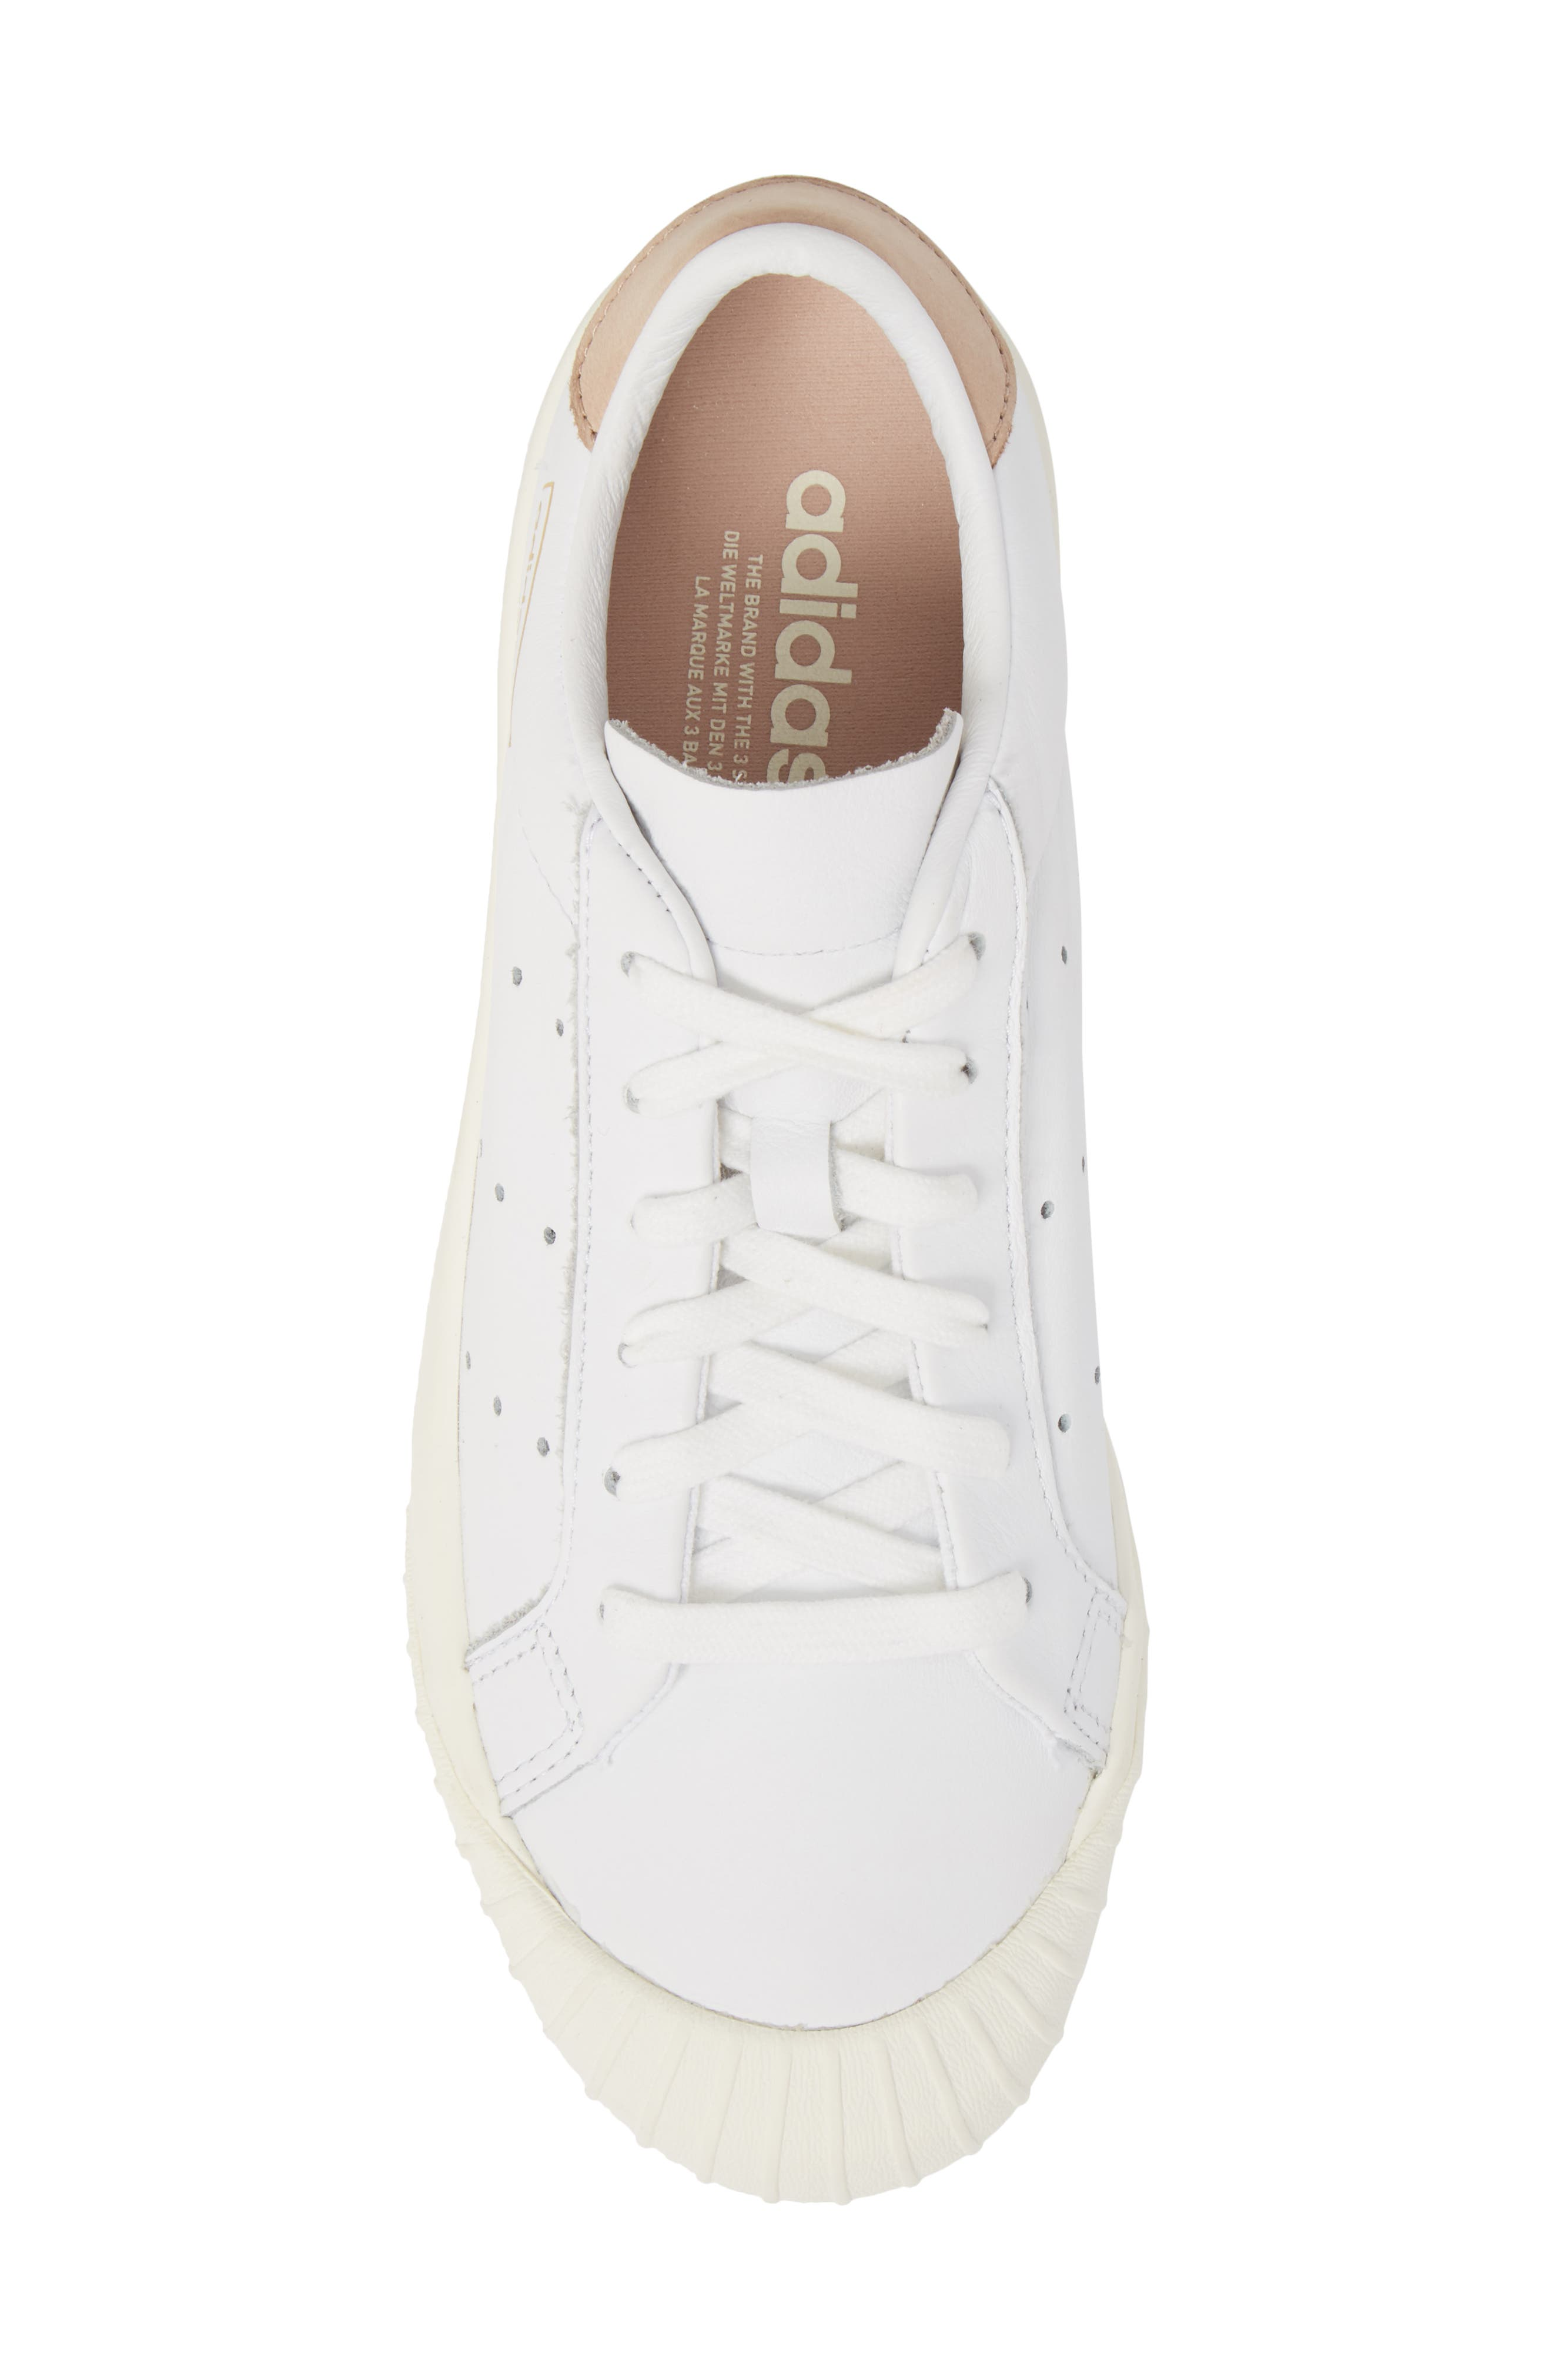 Everyn Perforated Low Top Sneaker,                             Alternate thumbnail 5, color,                             White/ White/ Ash Pearl